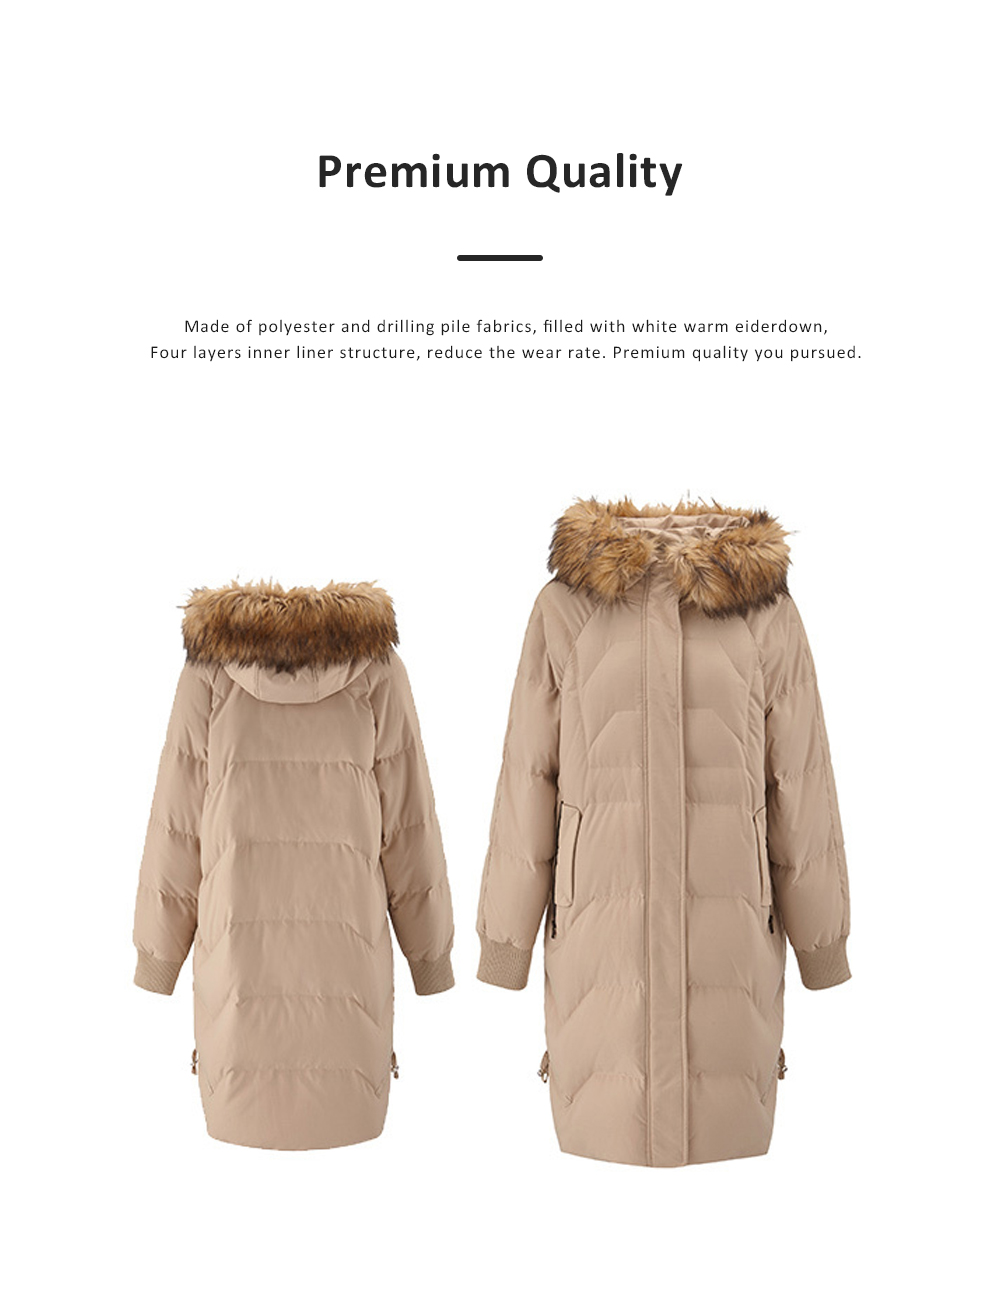 Women's Hooded Down Jacket Slim Long with Fur Hood Collar Lightweight Warm Coat for Winter Outdoor 1